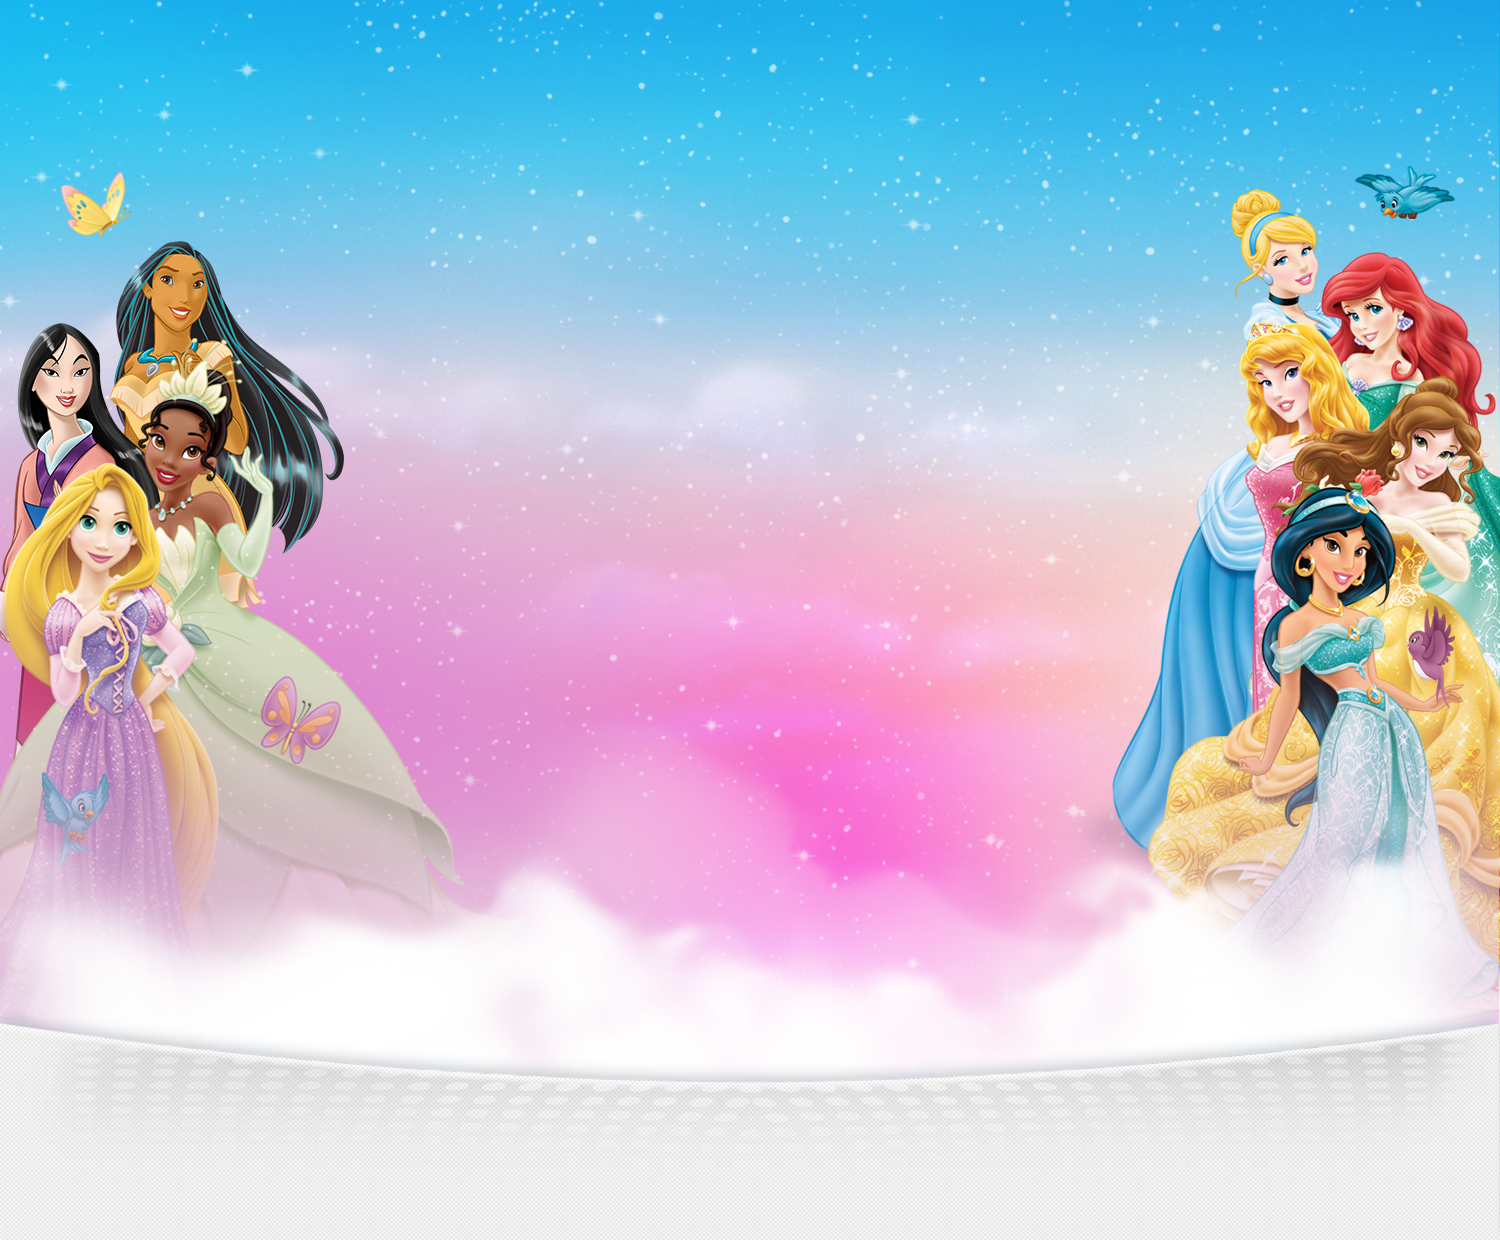 Disney Princess Background Tarpaulin Princess backg 1500x1240